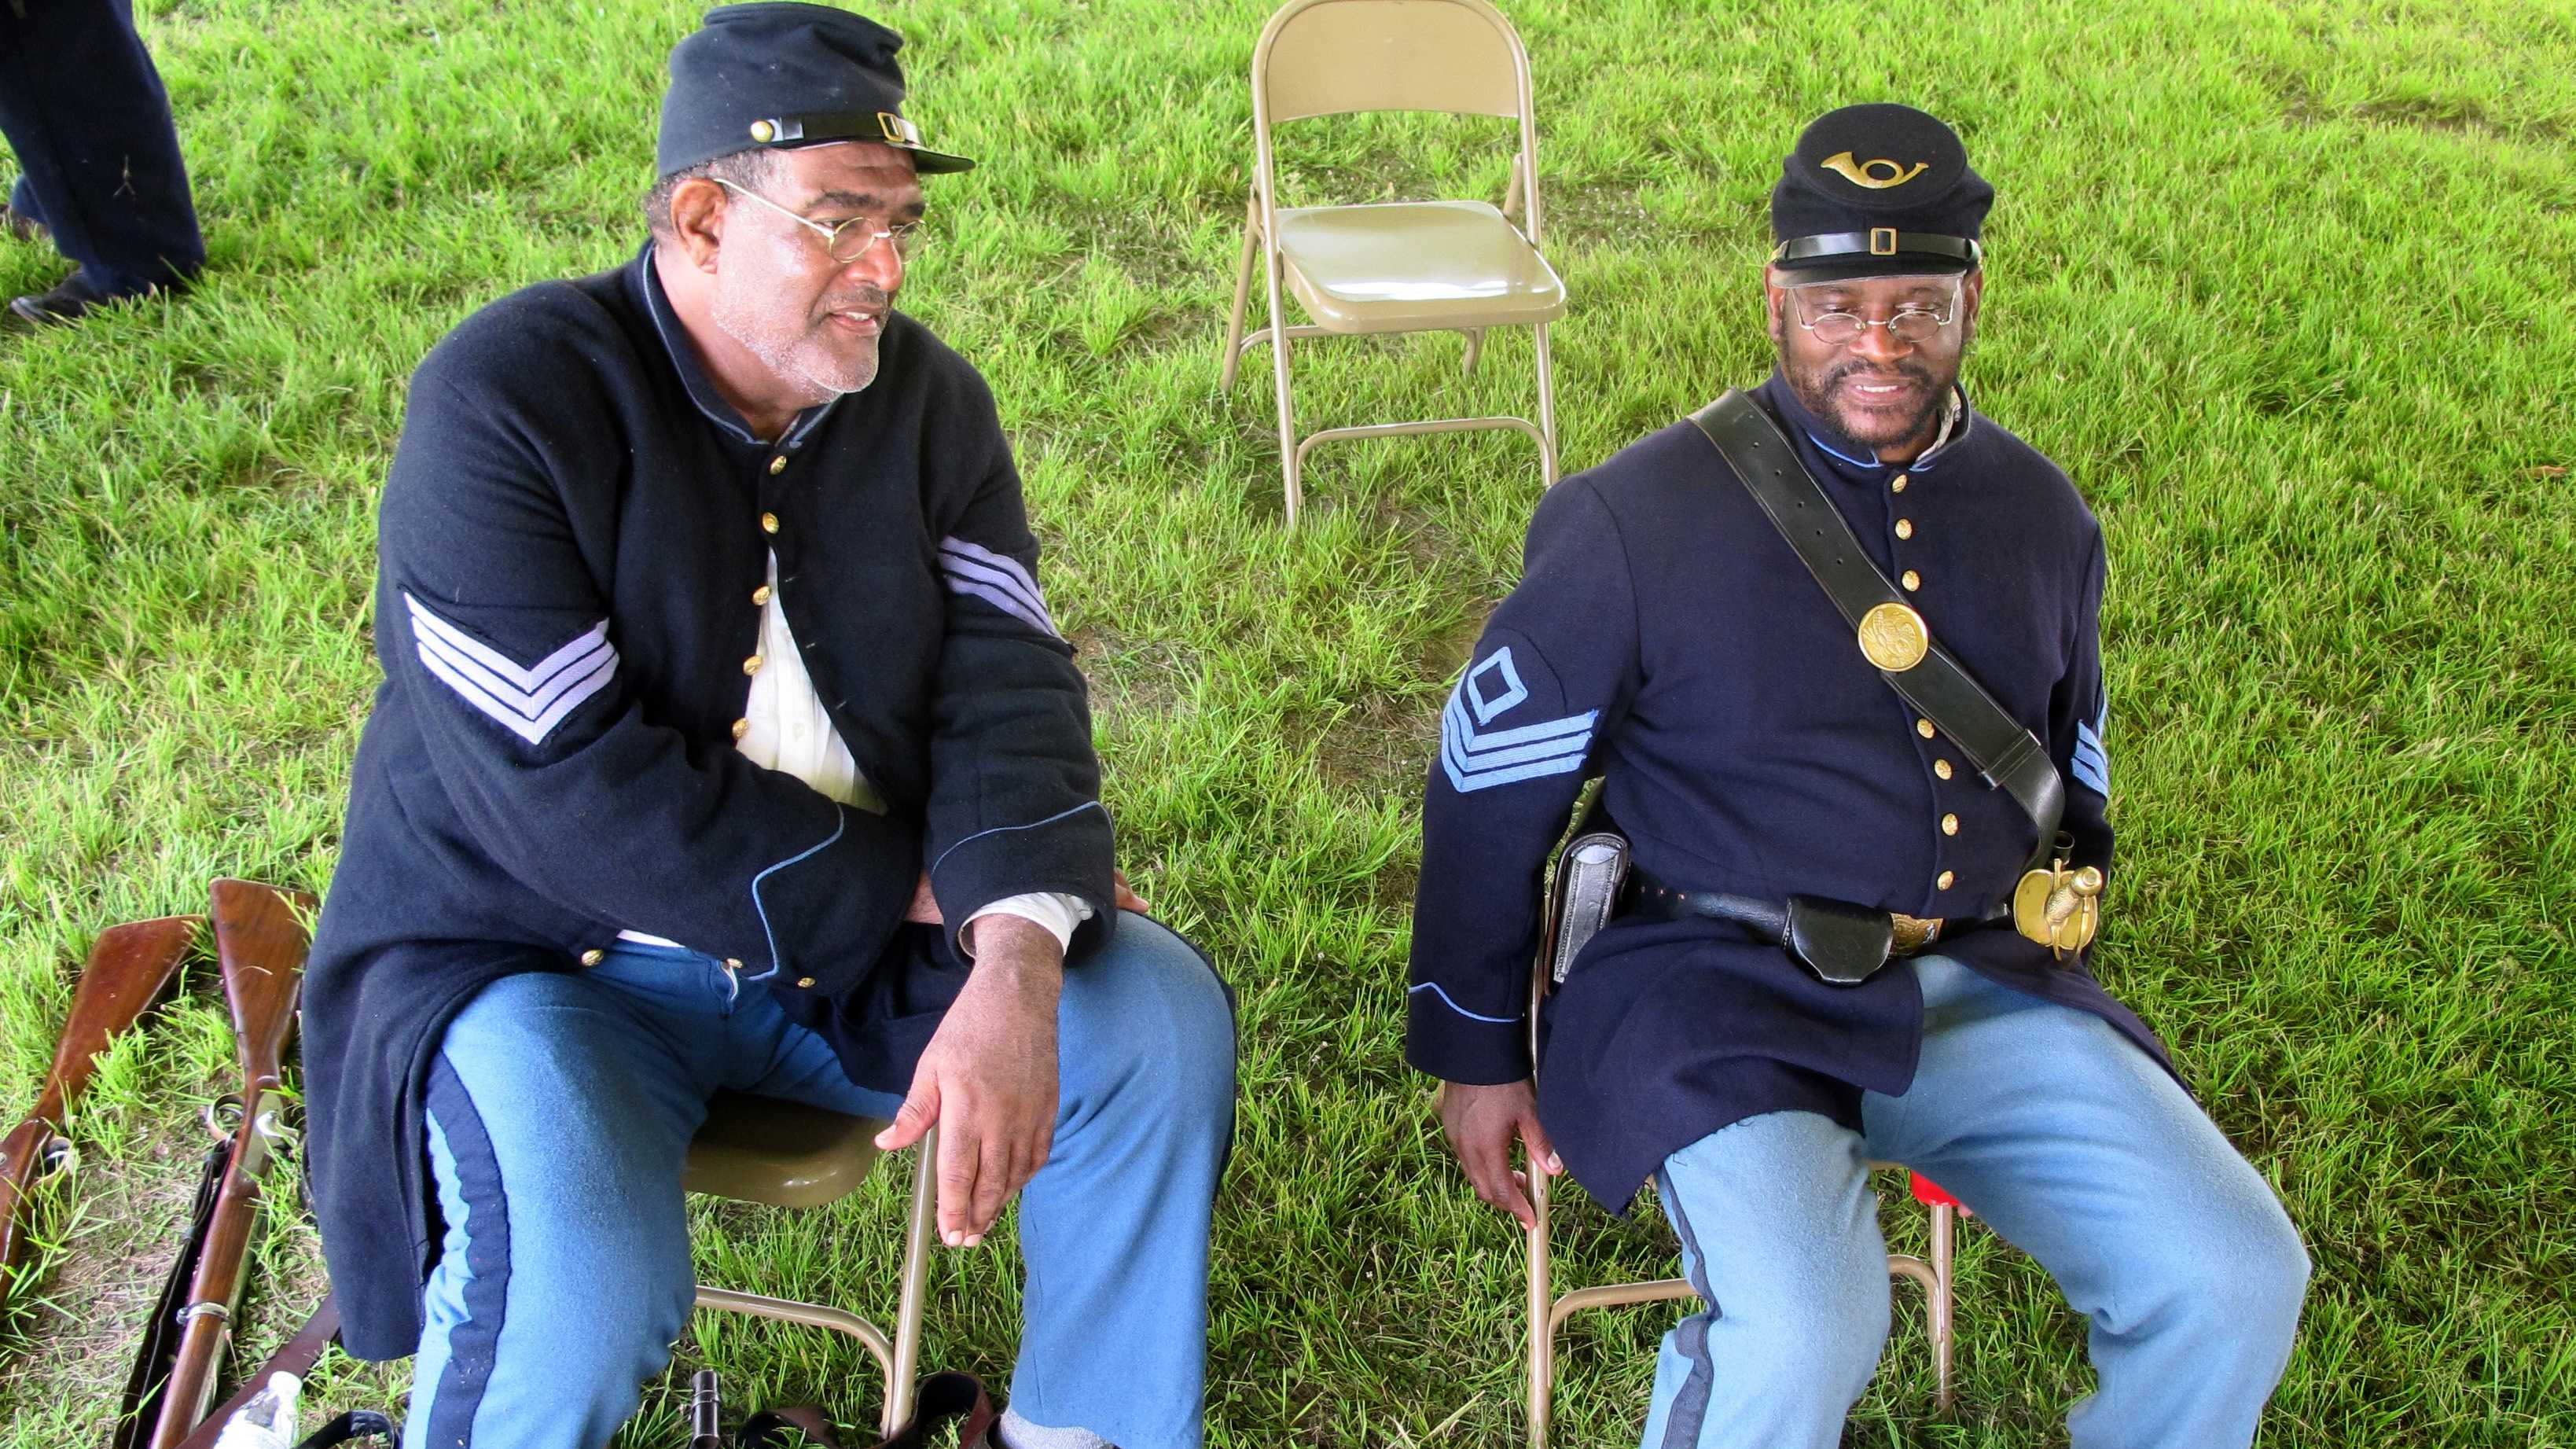 "Walter Sanderson of Upper Marlboro, Md., left, and Louis Carter of Richmond, Va., re-enactors portraying members of the 54th Massachusetts Volunteer Infantry, sit in an encampment at Fort Moultrie on Sullivans Island, S.C., on Thursday, July 18, 2013. The re-enactors gathered to commemorate the 150th anniversary of the famed Civil War attack by the 54th Massachusetts Volunteer Infantry in a fight commemorated in the film ""Glory."""